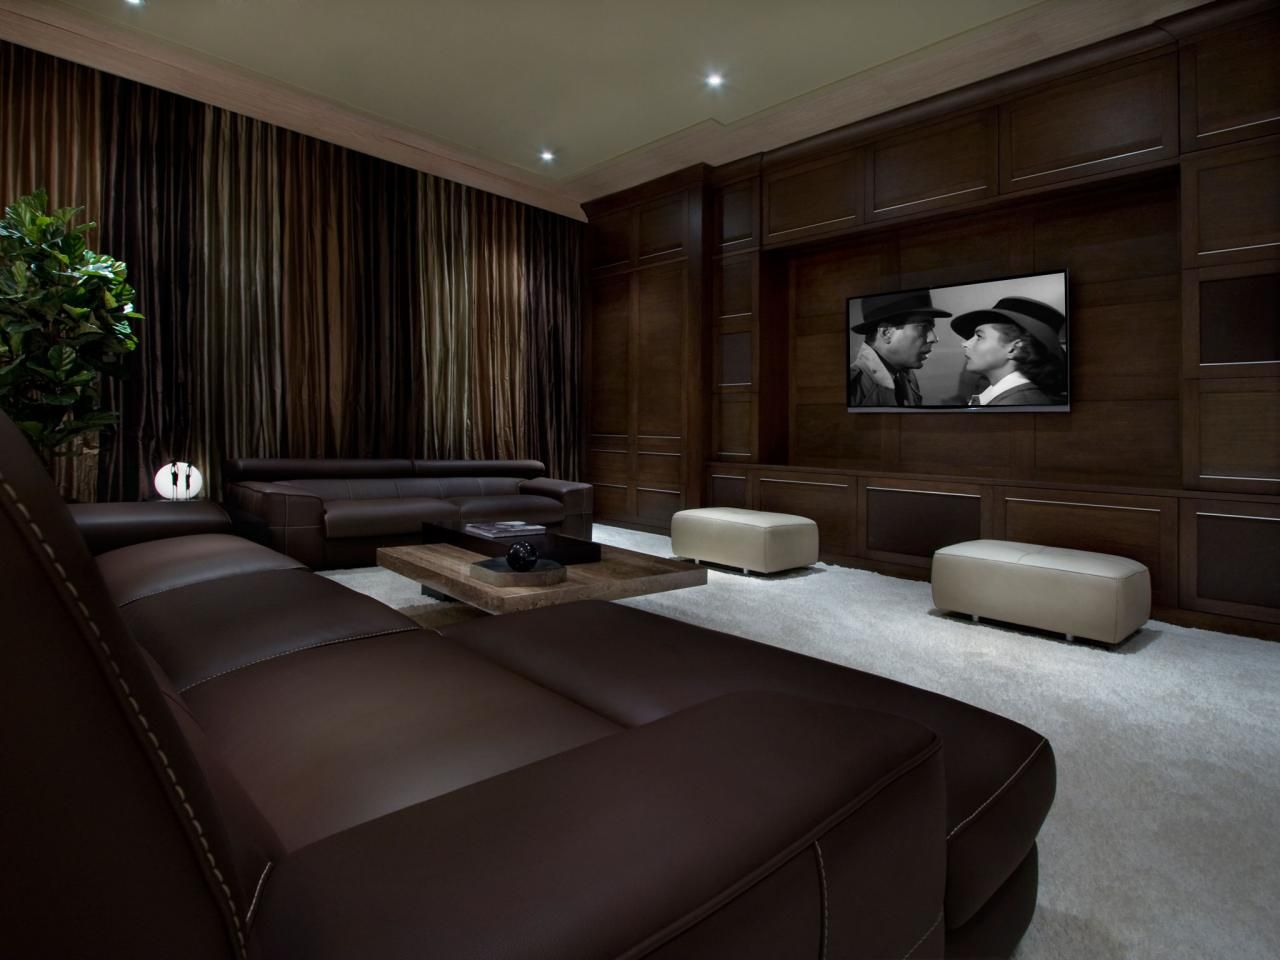 Home Theater Ideas   Design Ideas For Home Theaters | HGTV